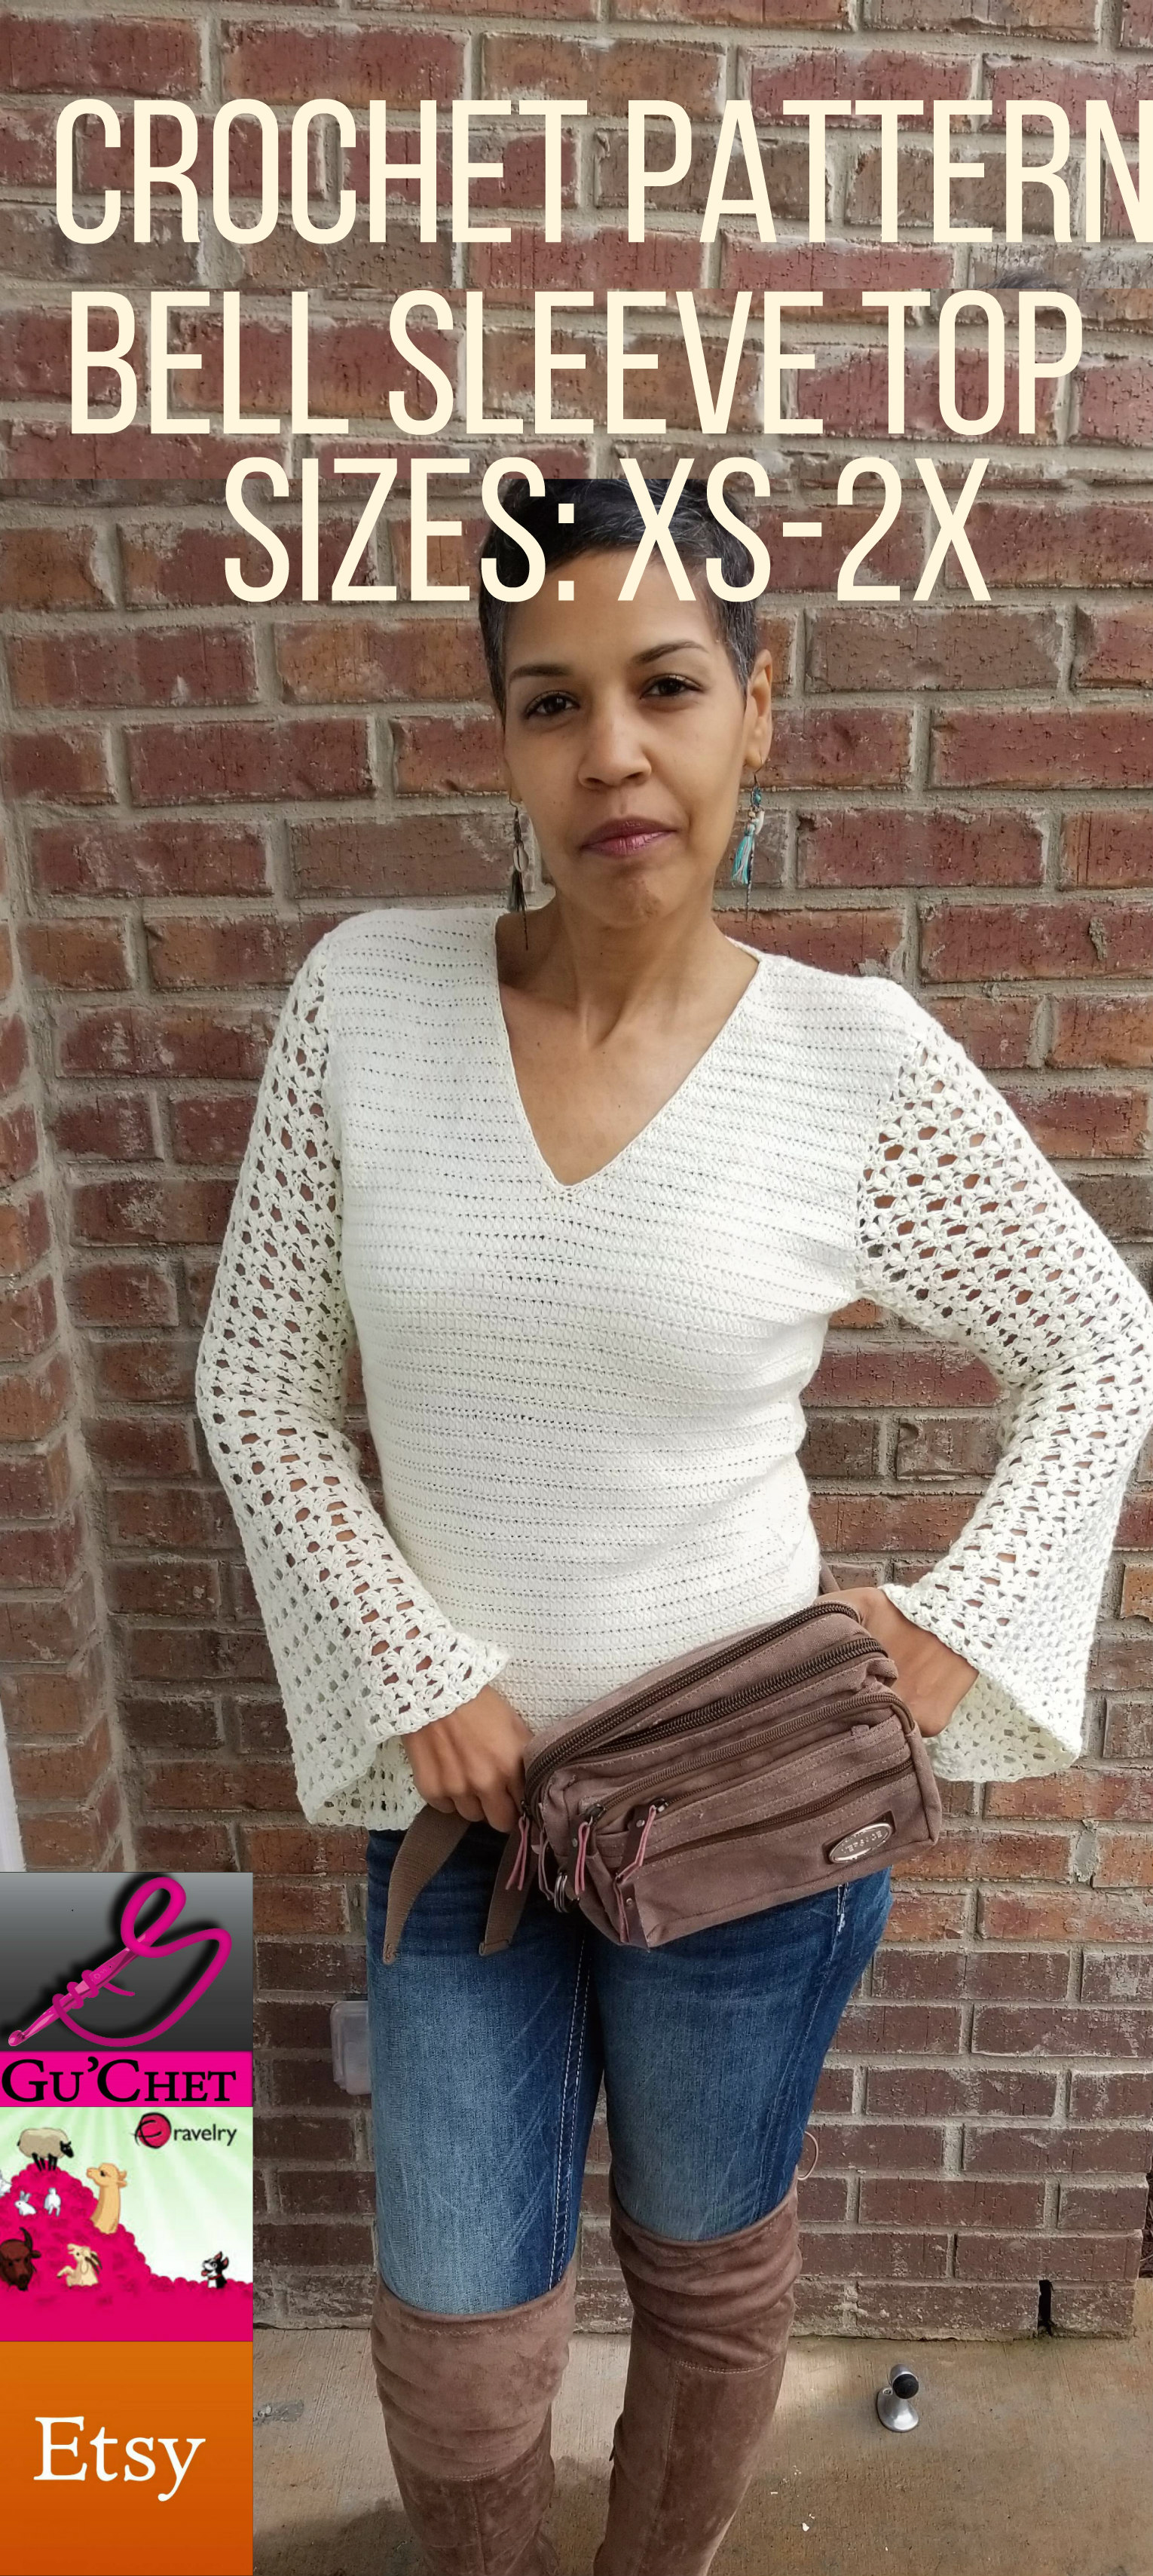 10_Crochet Top Pattern by GuChet_Bell Sleeve Top_6.jpg